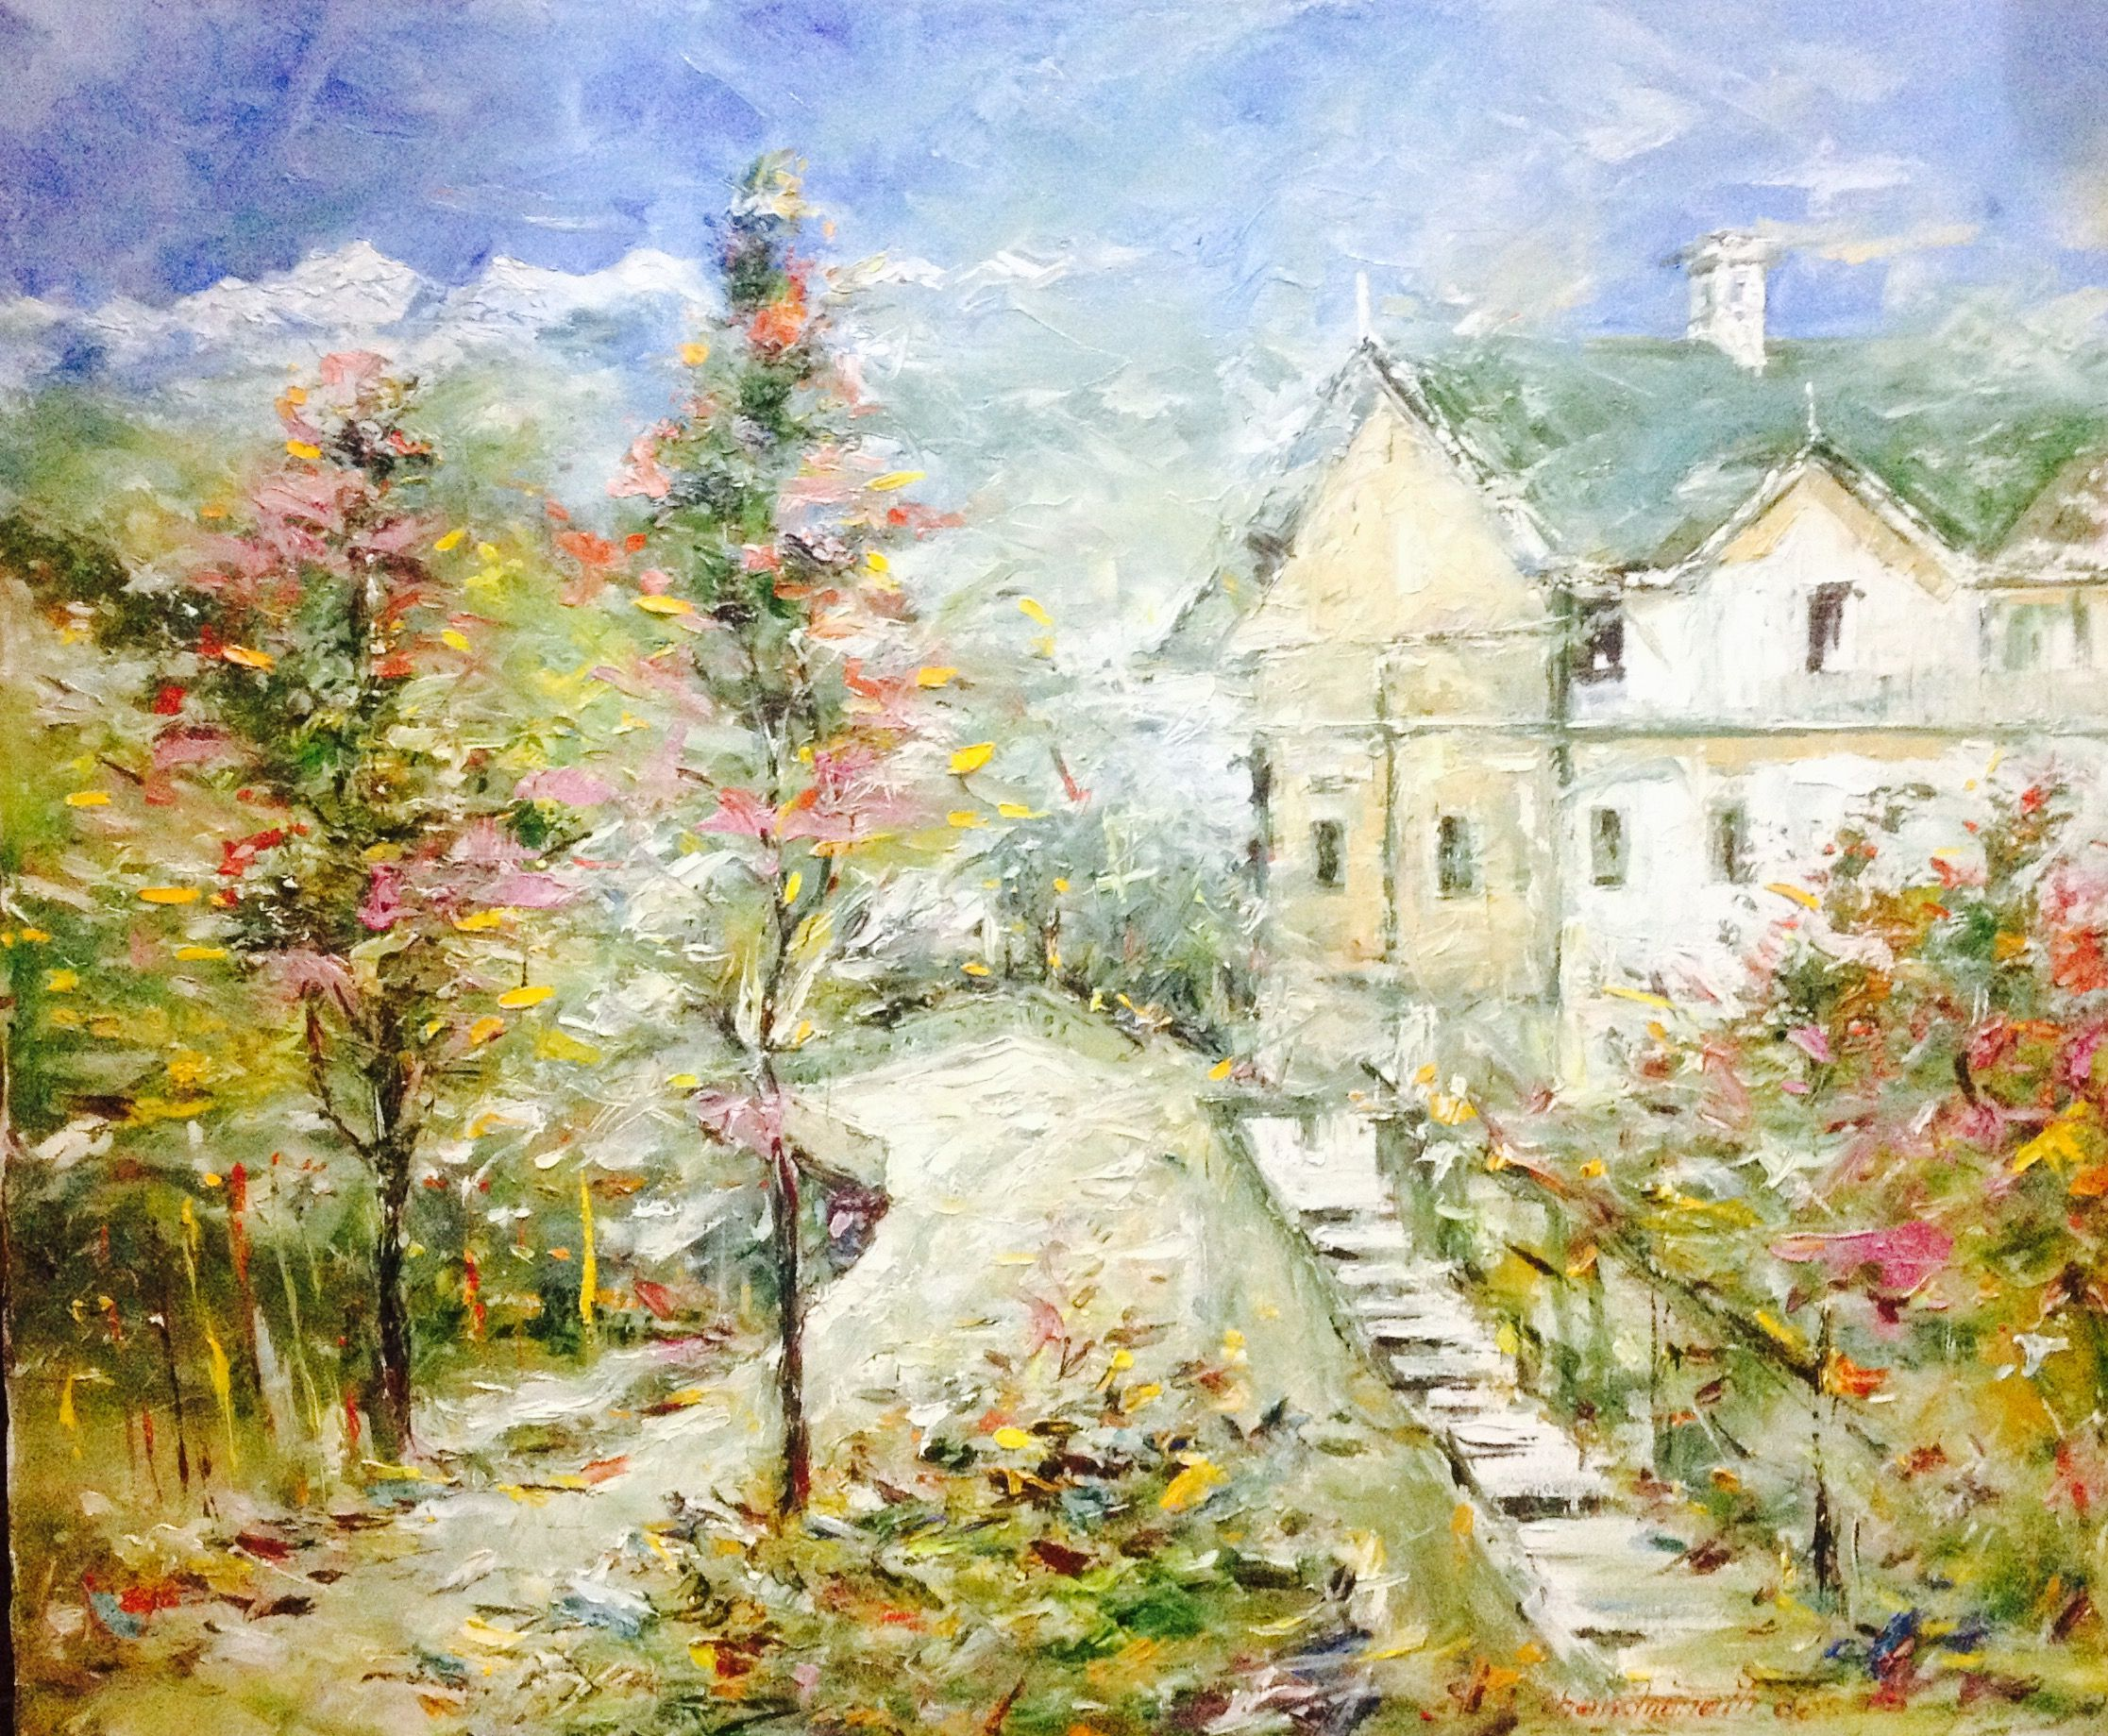 It S A Beautiful Landscapepainting Which Provides Us With A View Of A Villa Surrounded By Trees And Mountains The Artist Landscape Paintings Painting Art